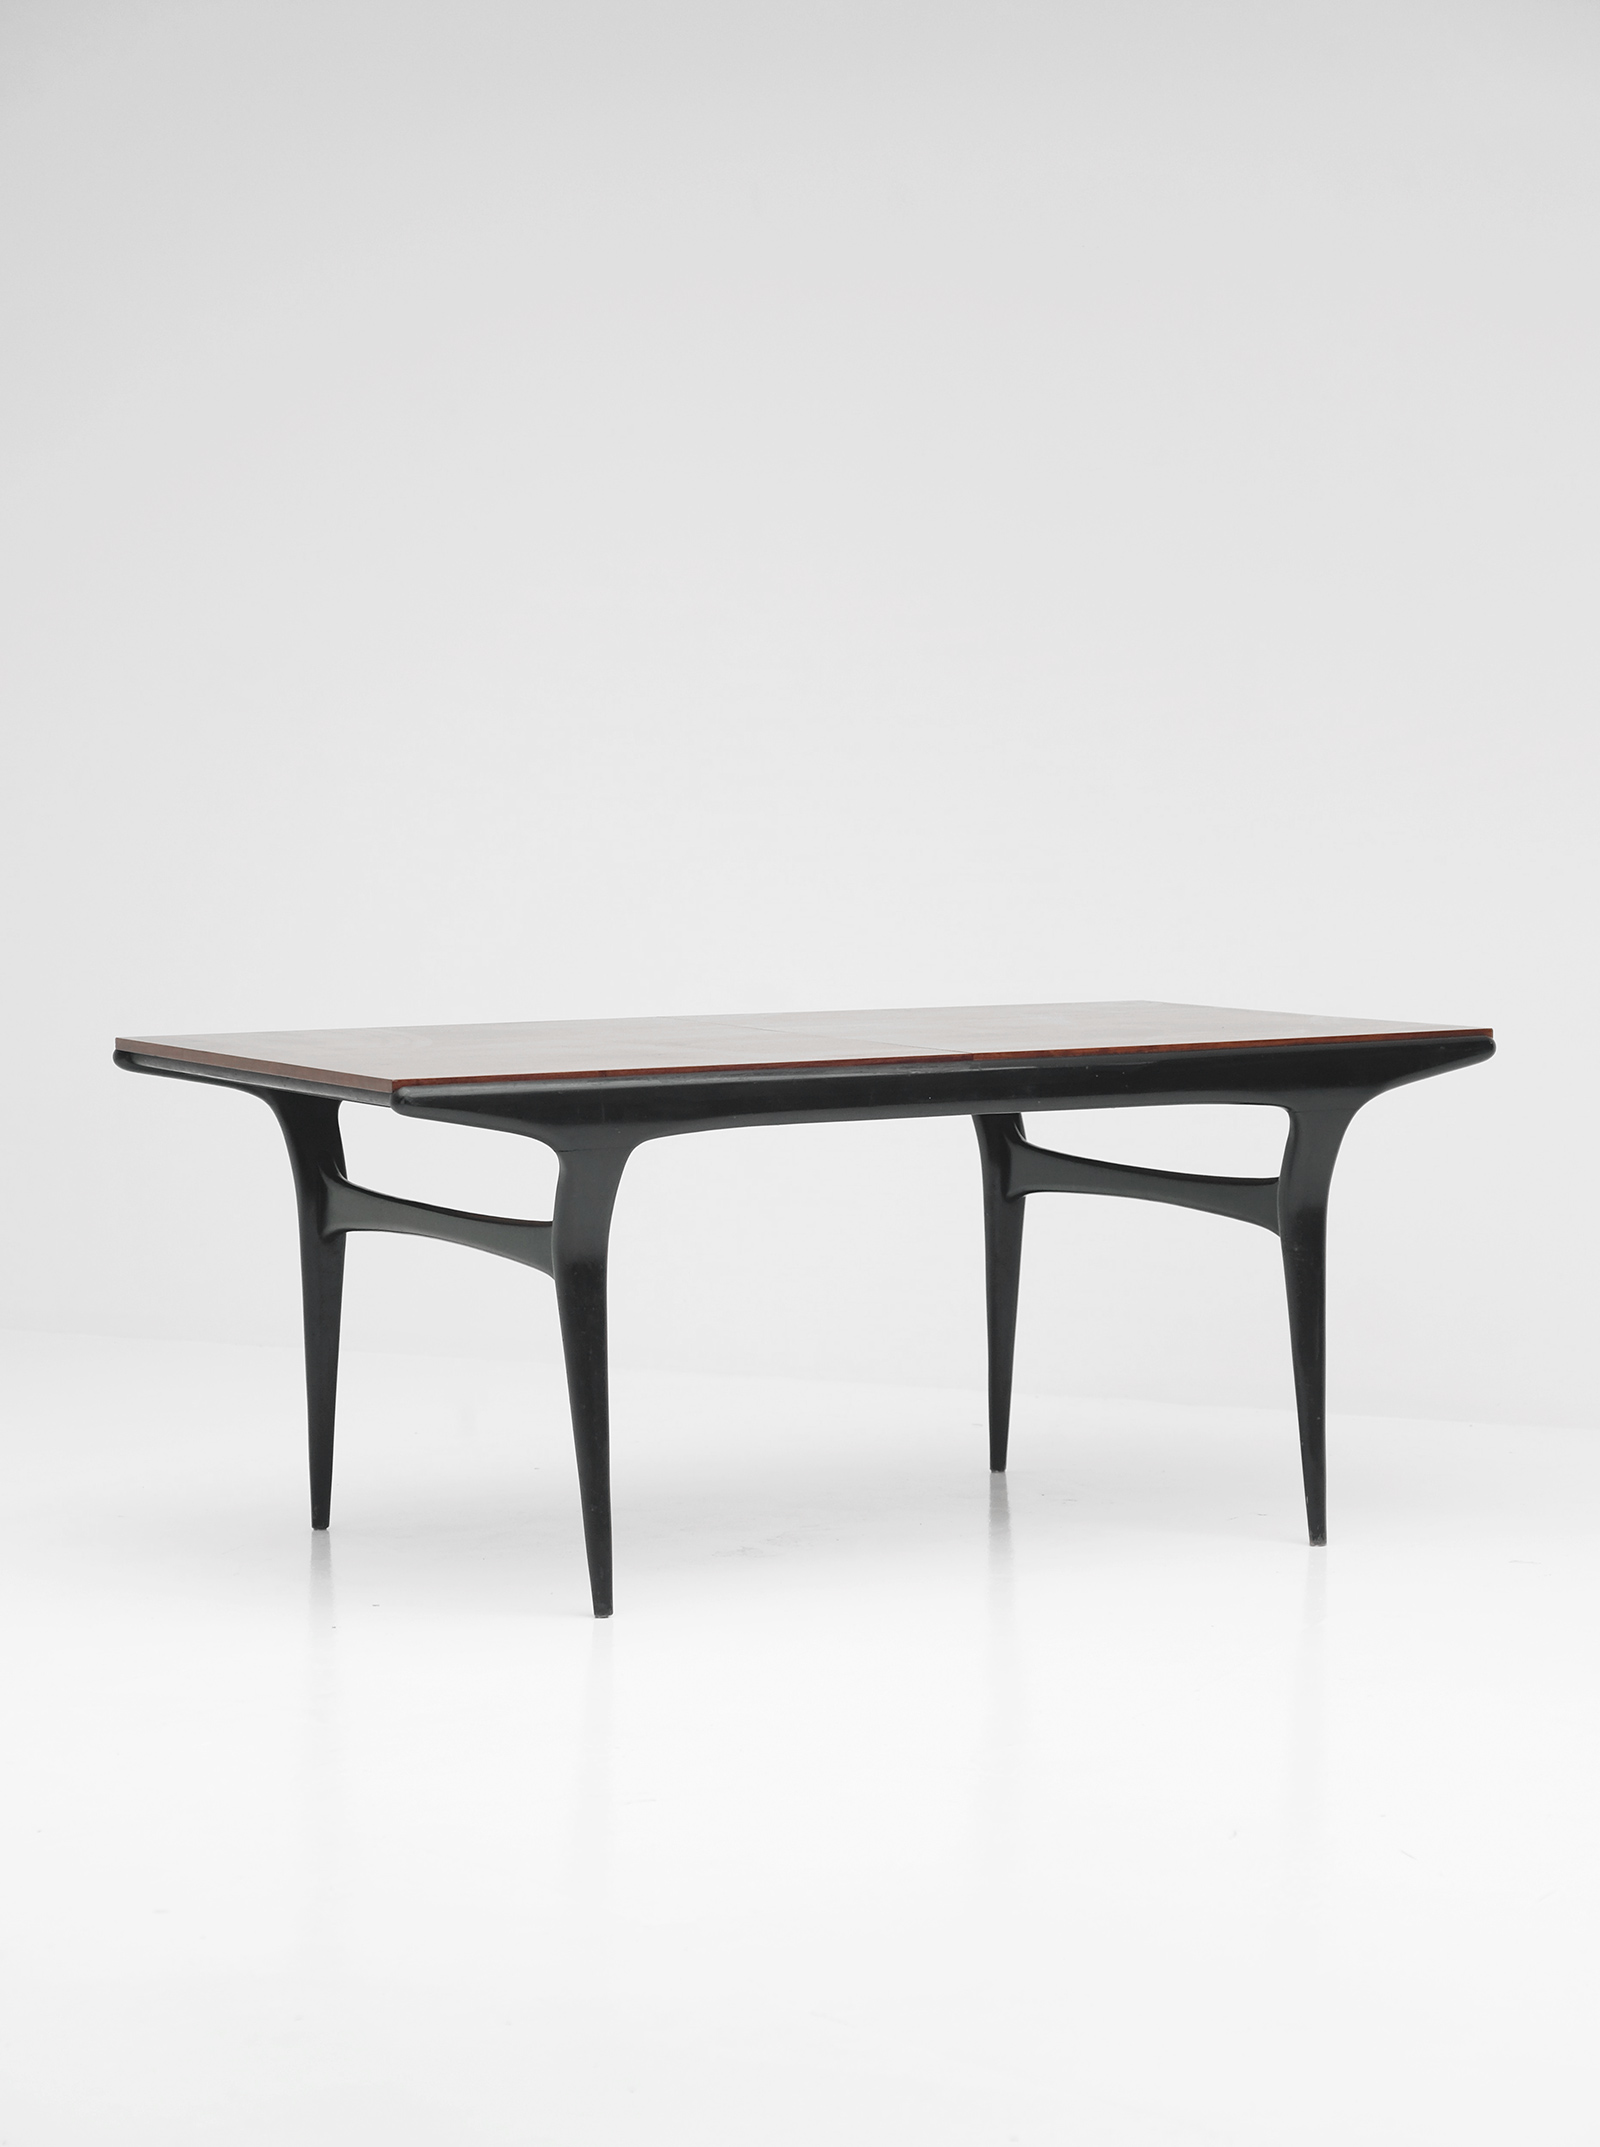 Alfred Hendrickx rare Belform Dining Table 1950simage 3